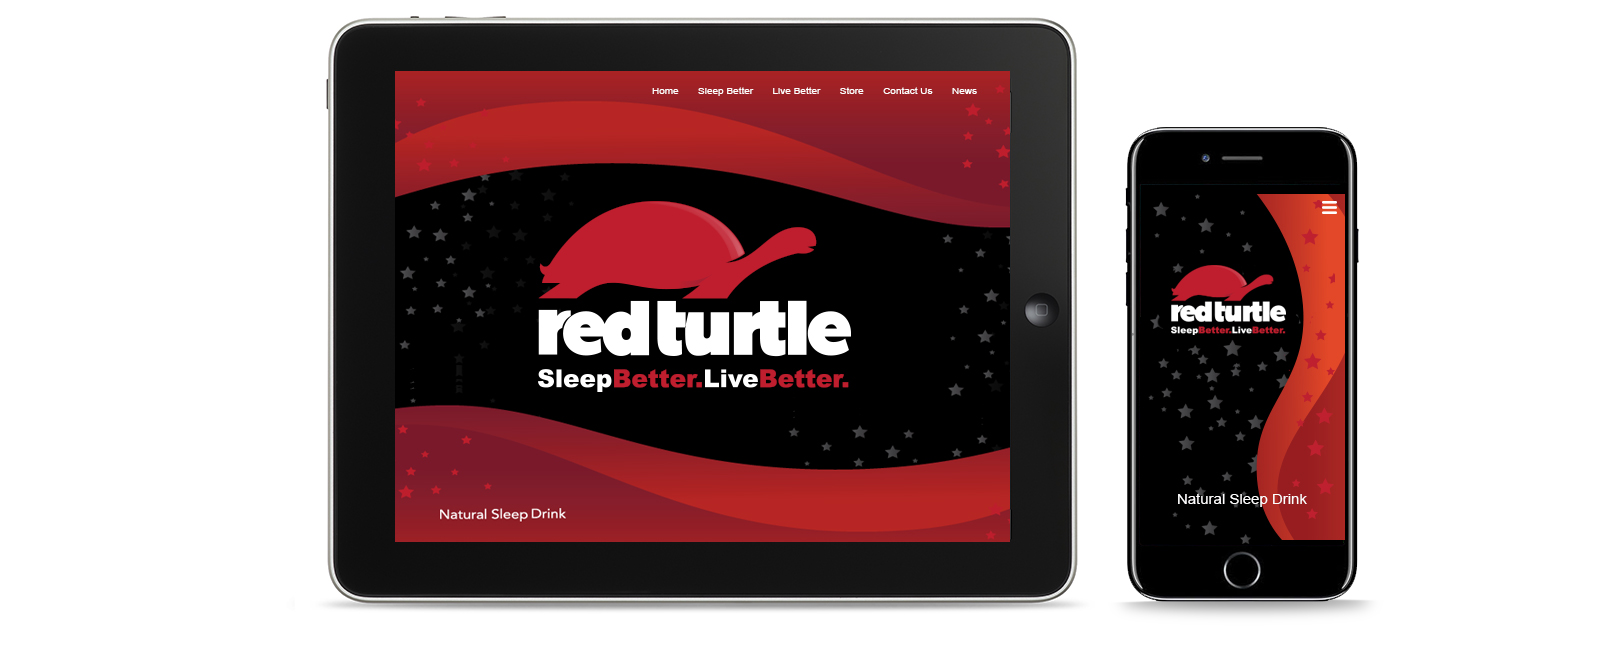 redturtle_ipad_iphone